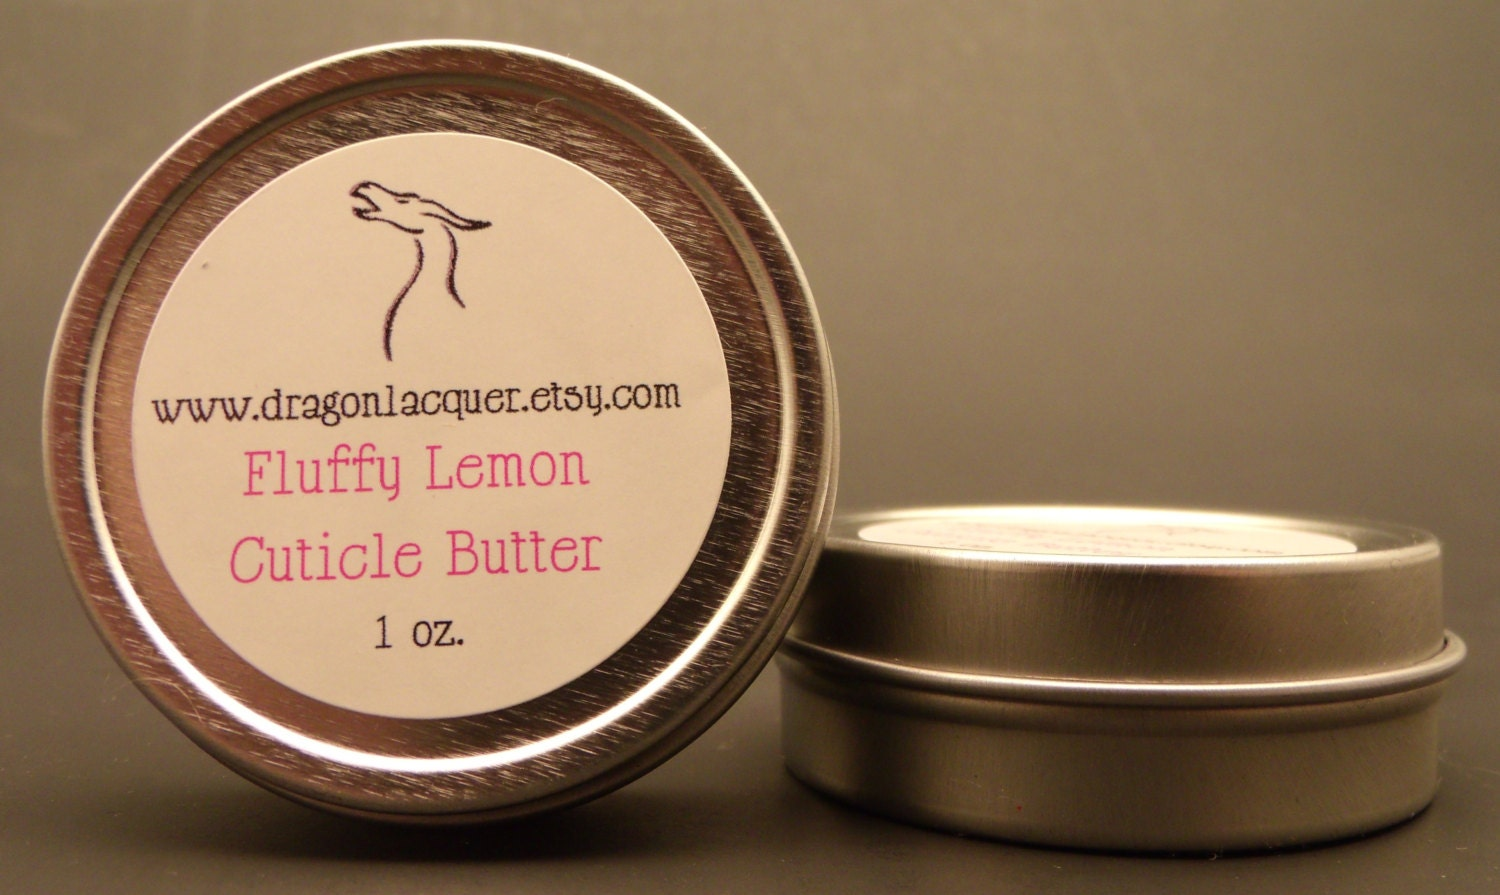 Fluffy Lemon Cuticle Butter - 1 oz